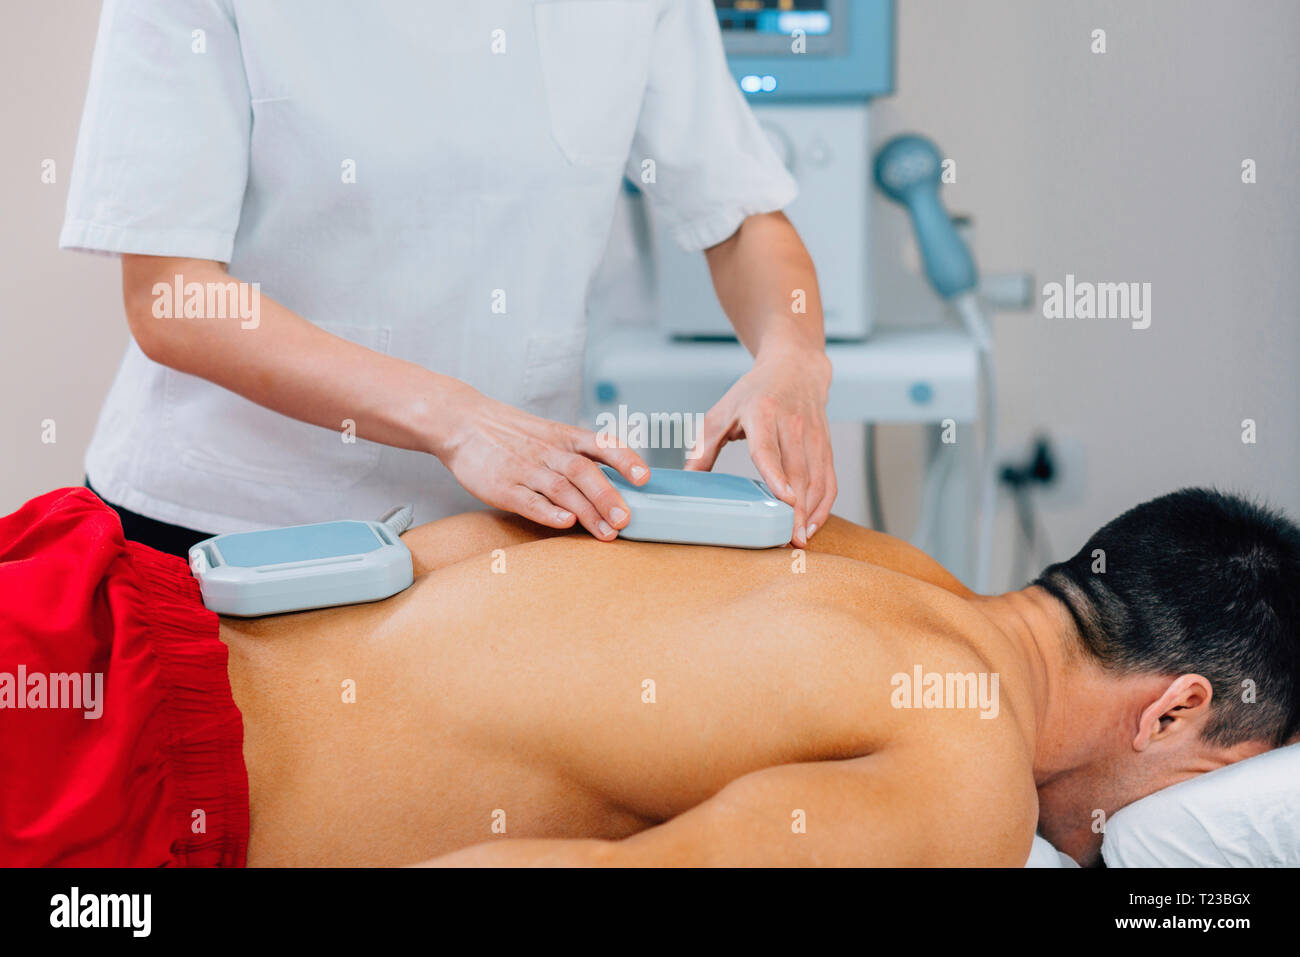 Magnetotherapy. Physical therapist placing magnets on patient's back. Stock Photo